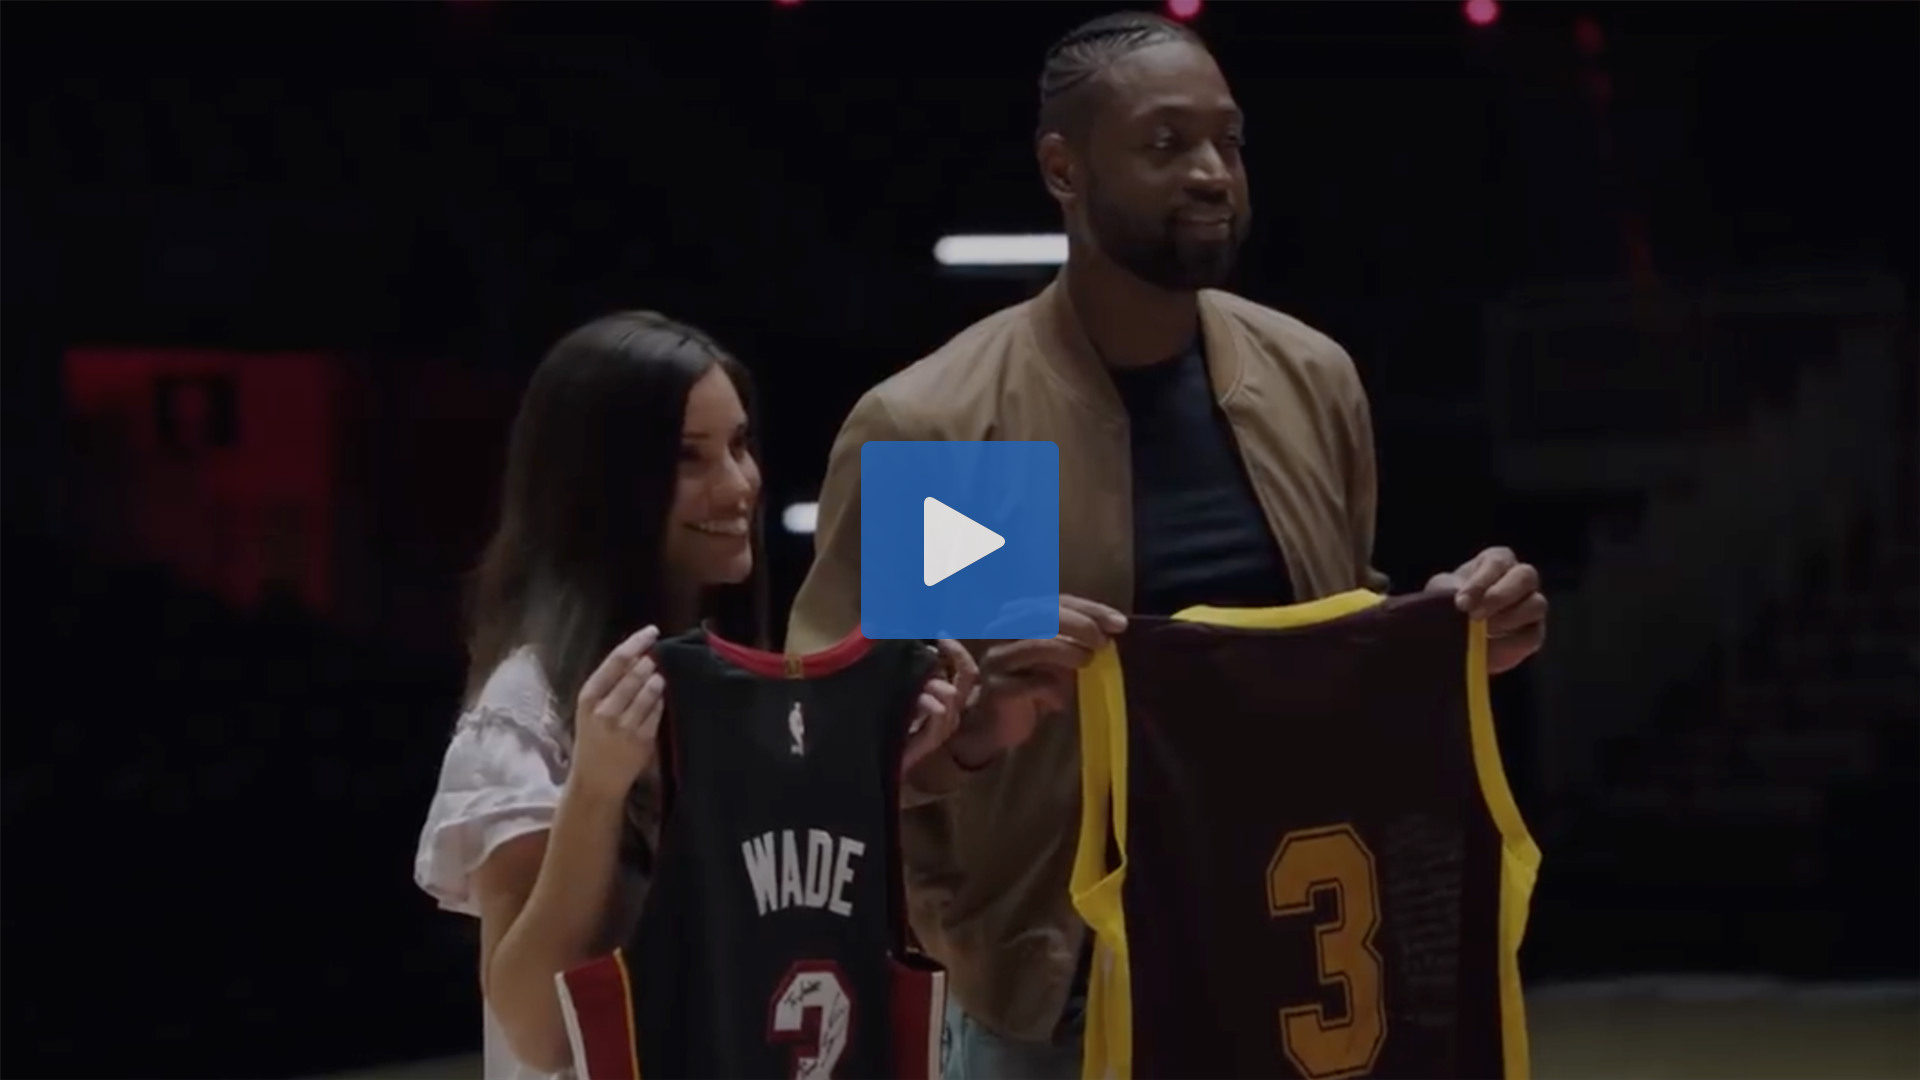 WATCH: Budweiser honours Dwyane Wade's legacy with emotional commercial   Sporting News